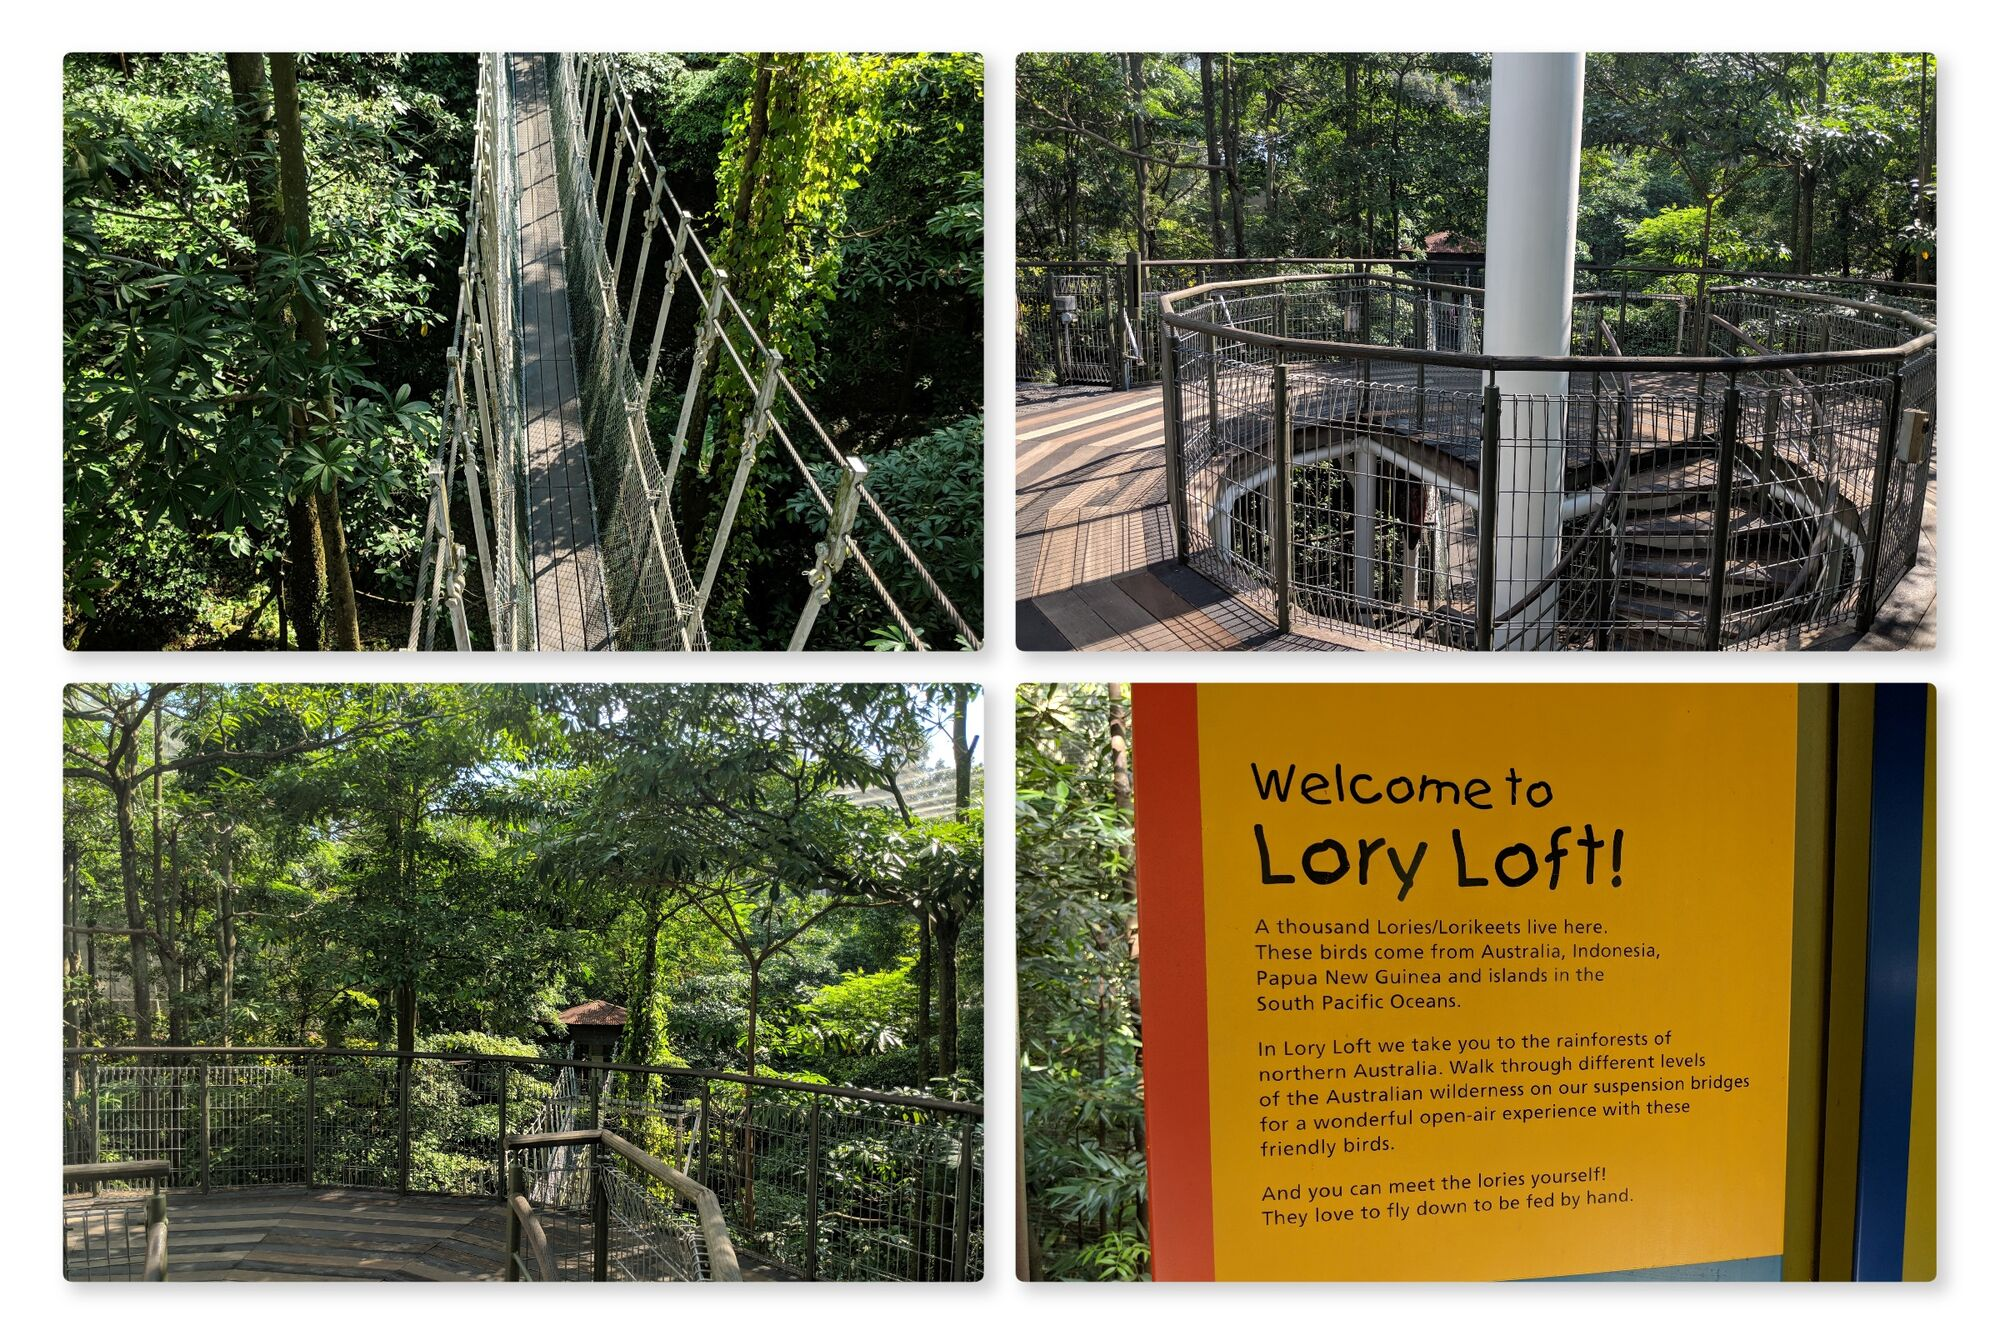 Lory loft is a recreation of the rainforest of Northern Australia. I loved the suspension bridge and tranquilness here.